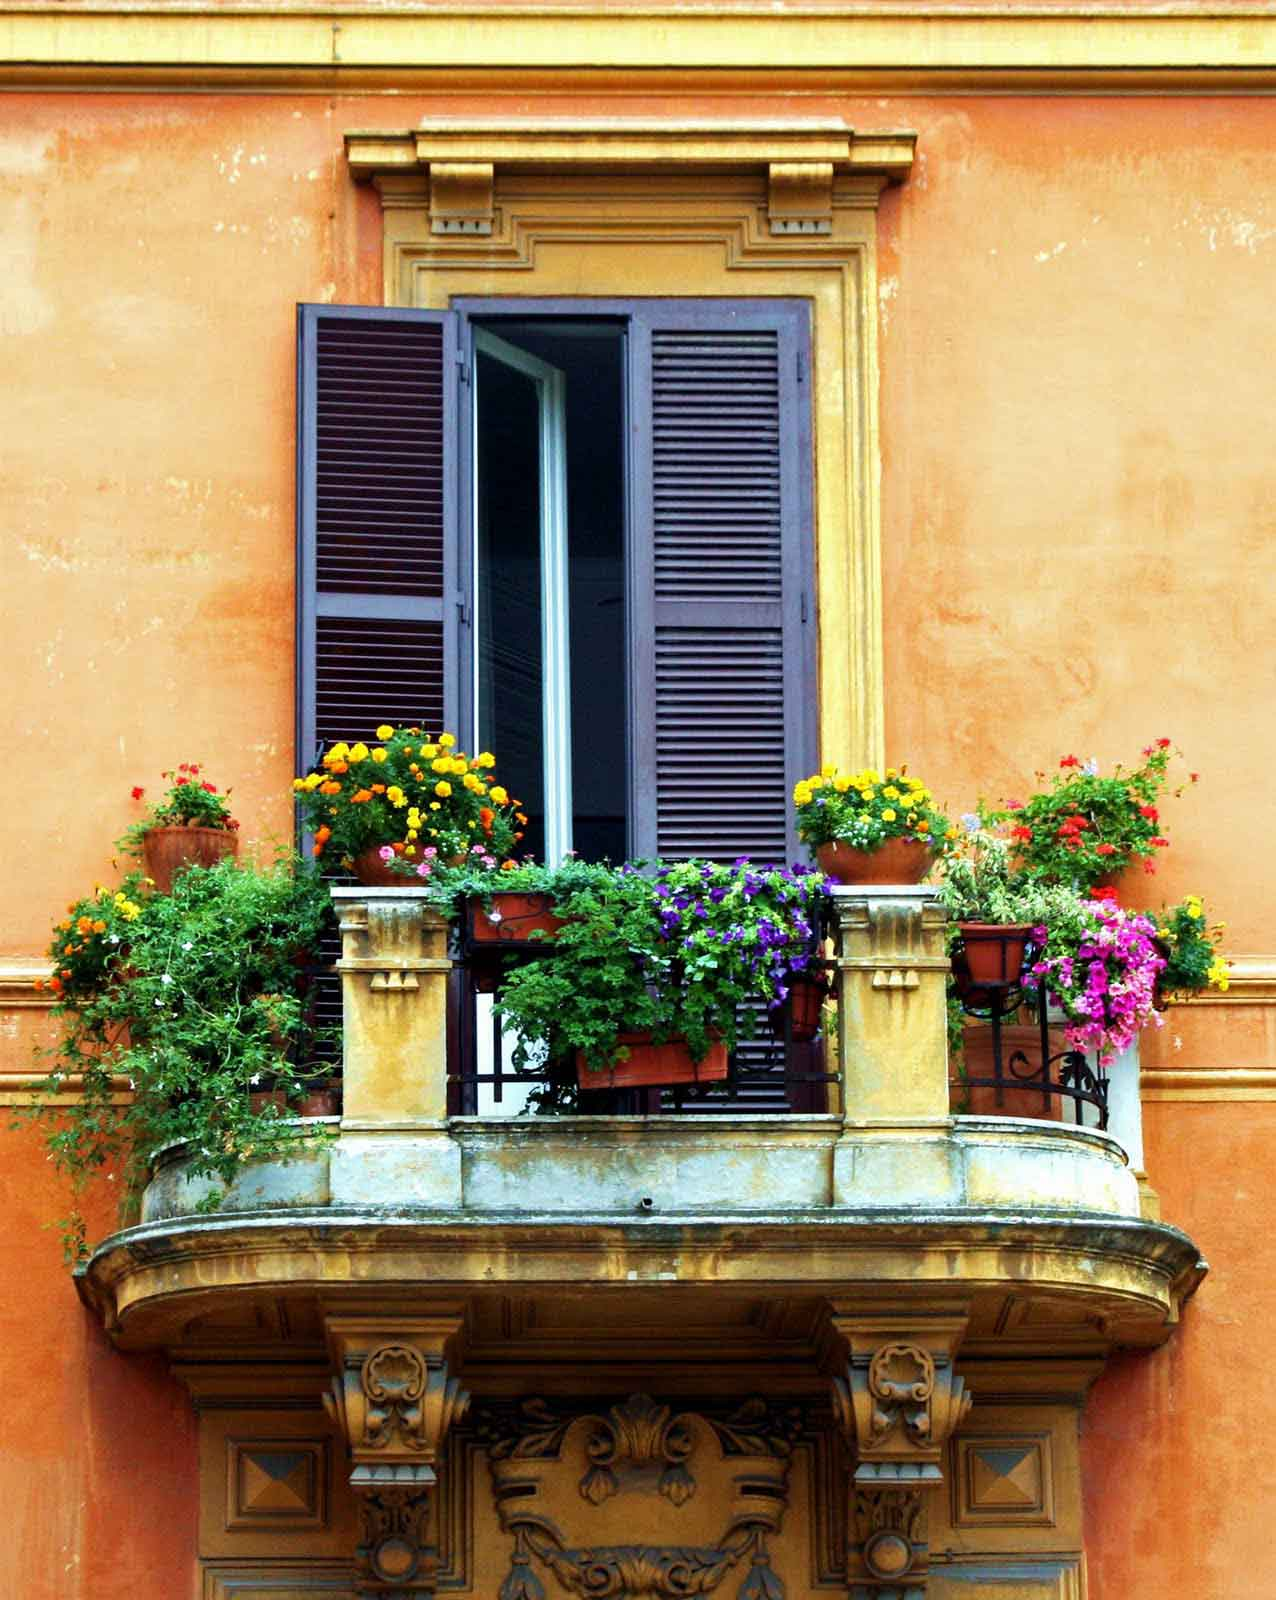 35 world 39 s most beautiful balconies your no 1 source of for On the balcony